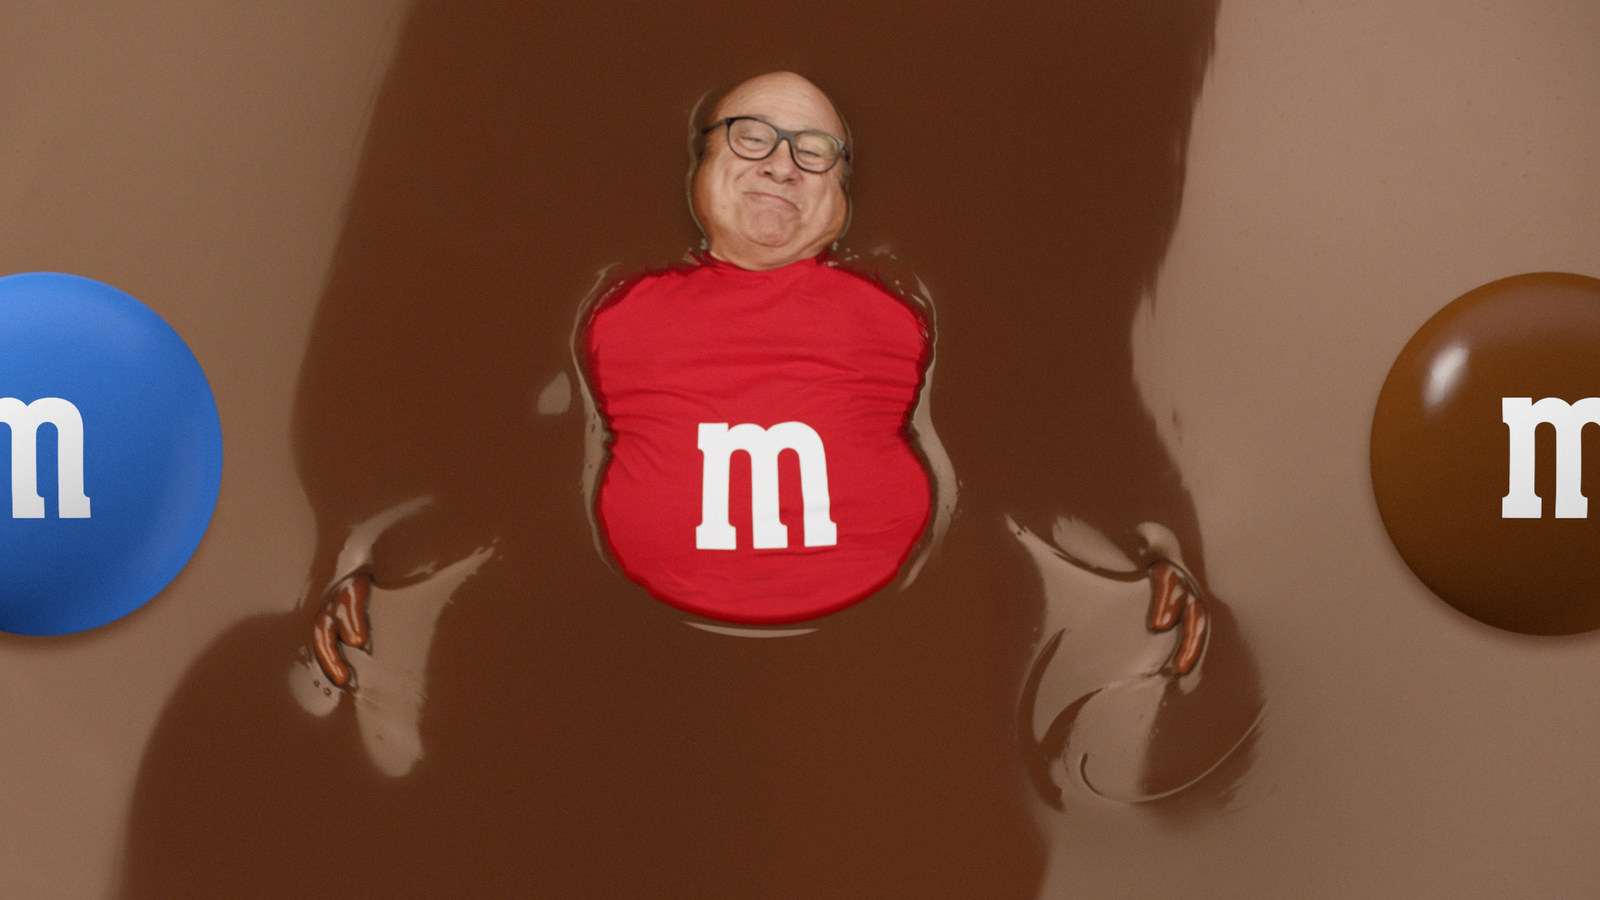 Danny Devito Stars In M M S Super Bowl Lii Commercial Adstasher Only stuff related to danny devito or iasip. danny devito stars in m m s super bowl